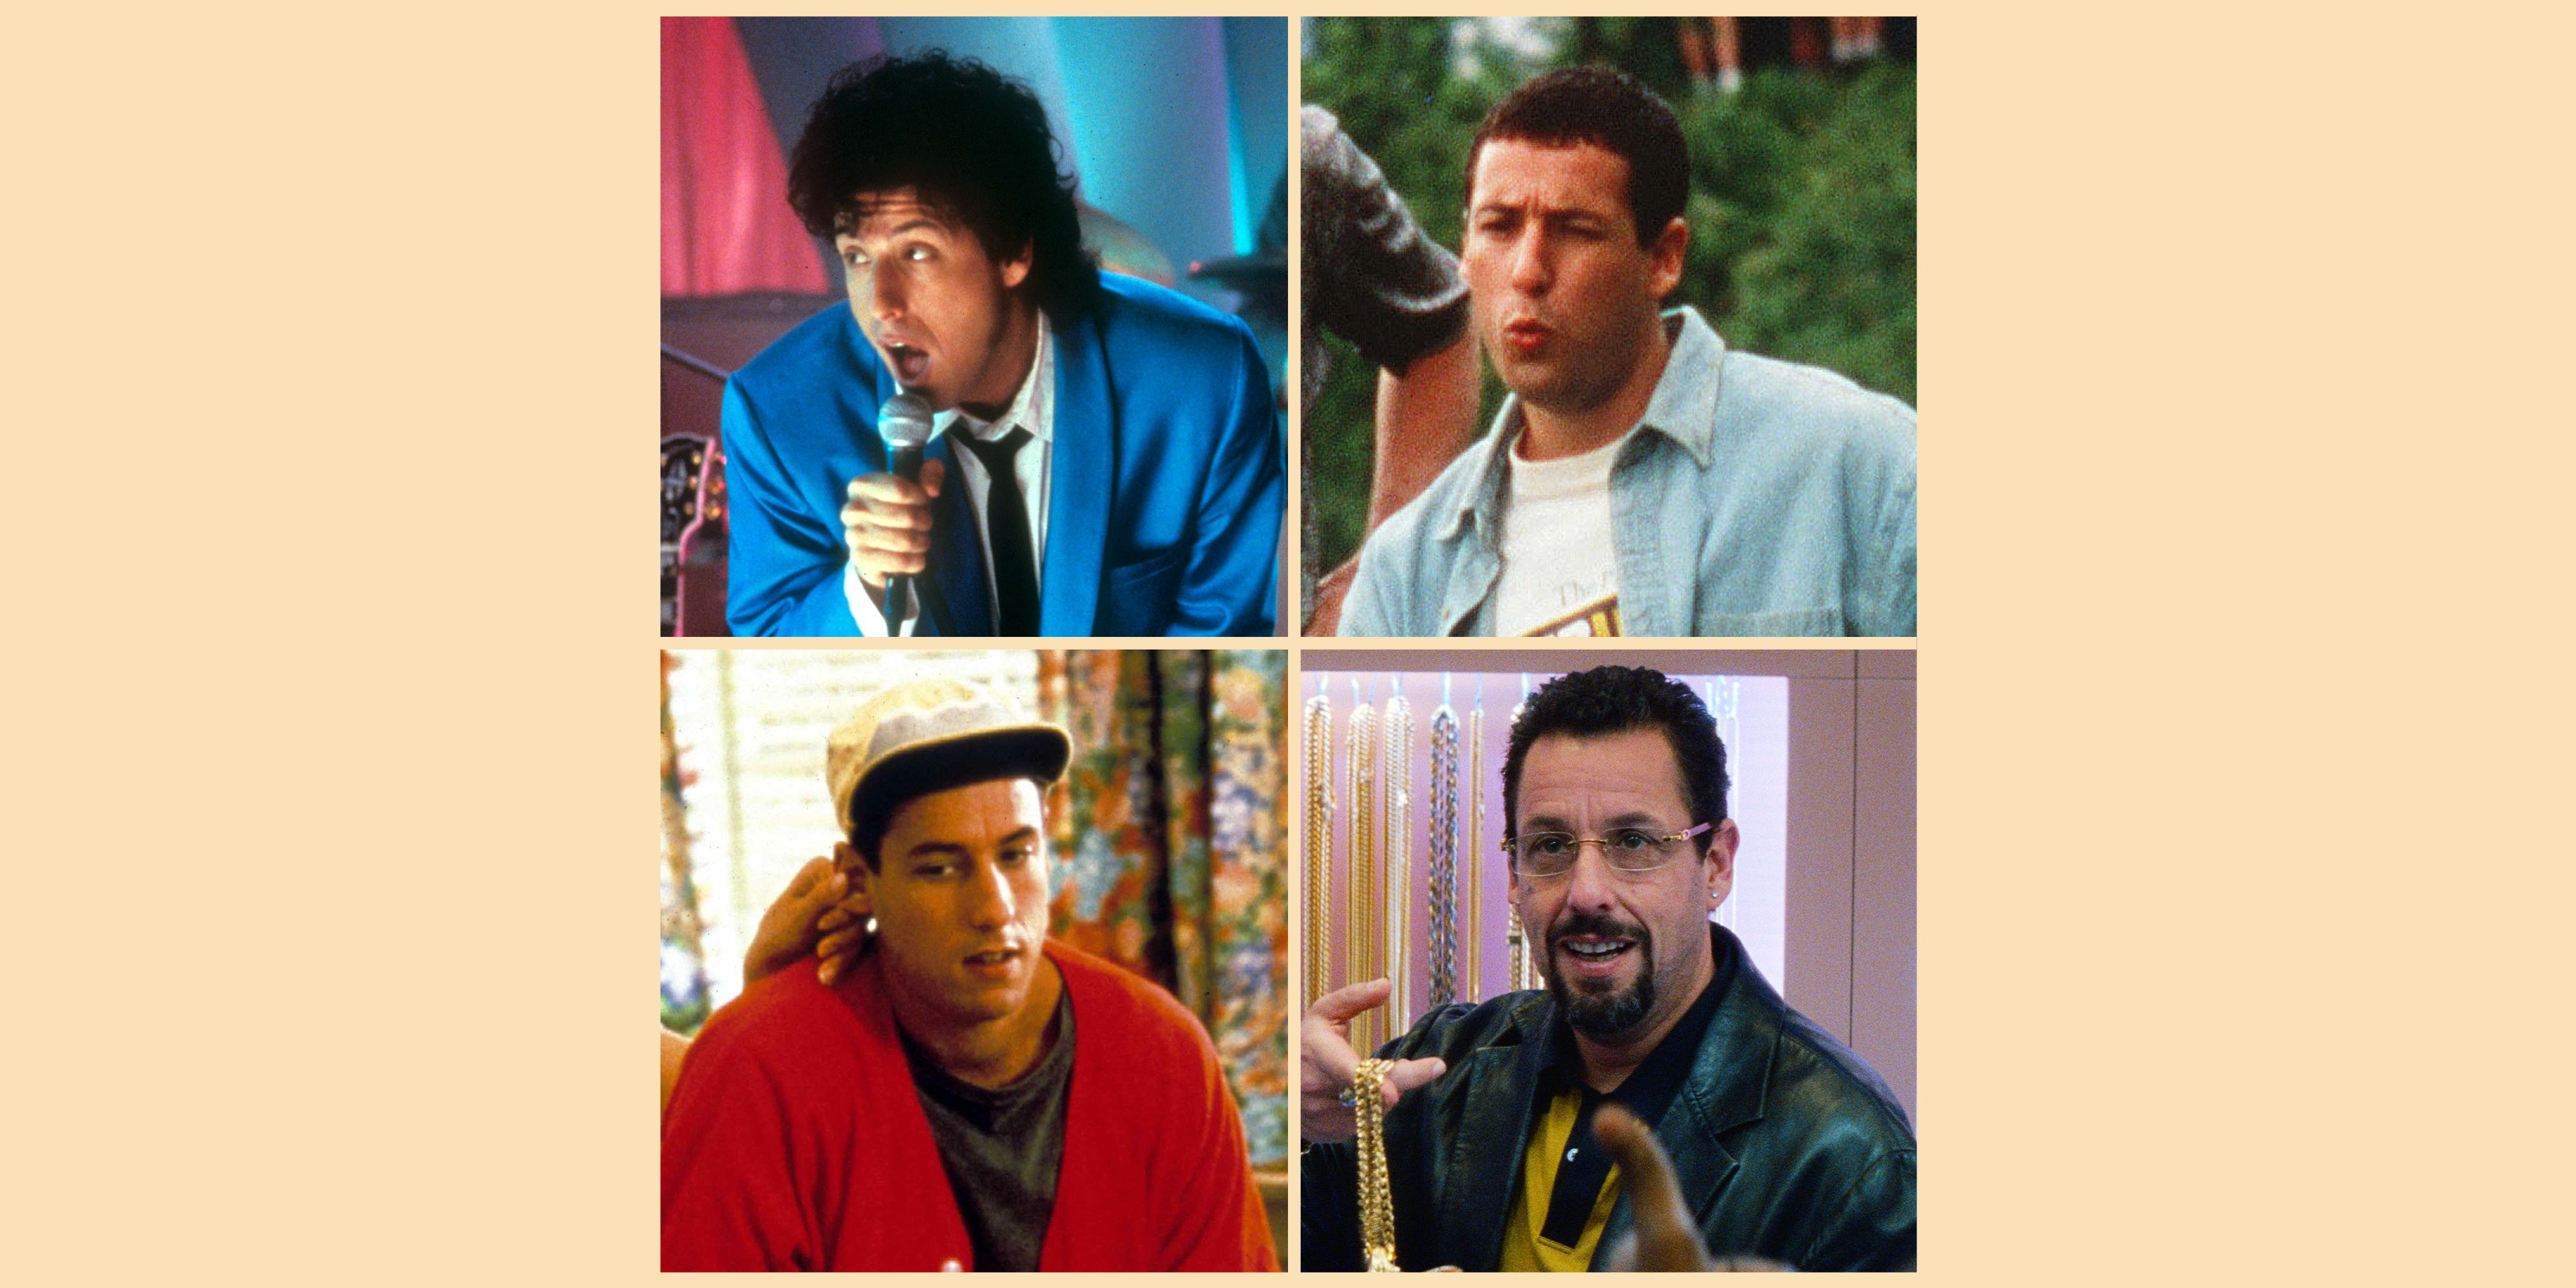 Every Single Adam Sandler Movie, Ranked From Worst to Best